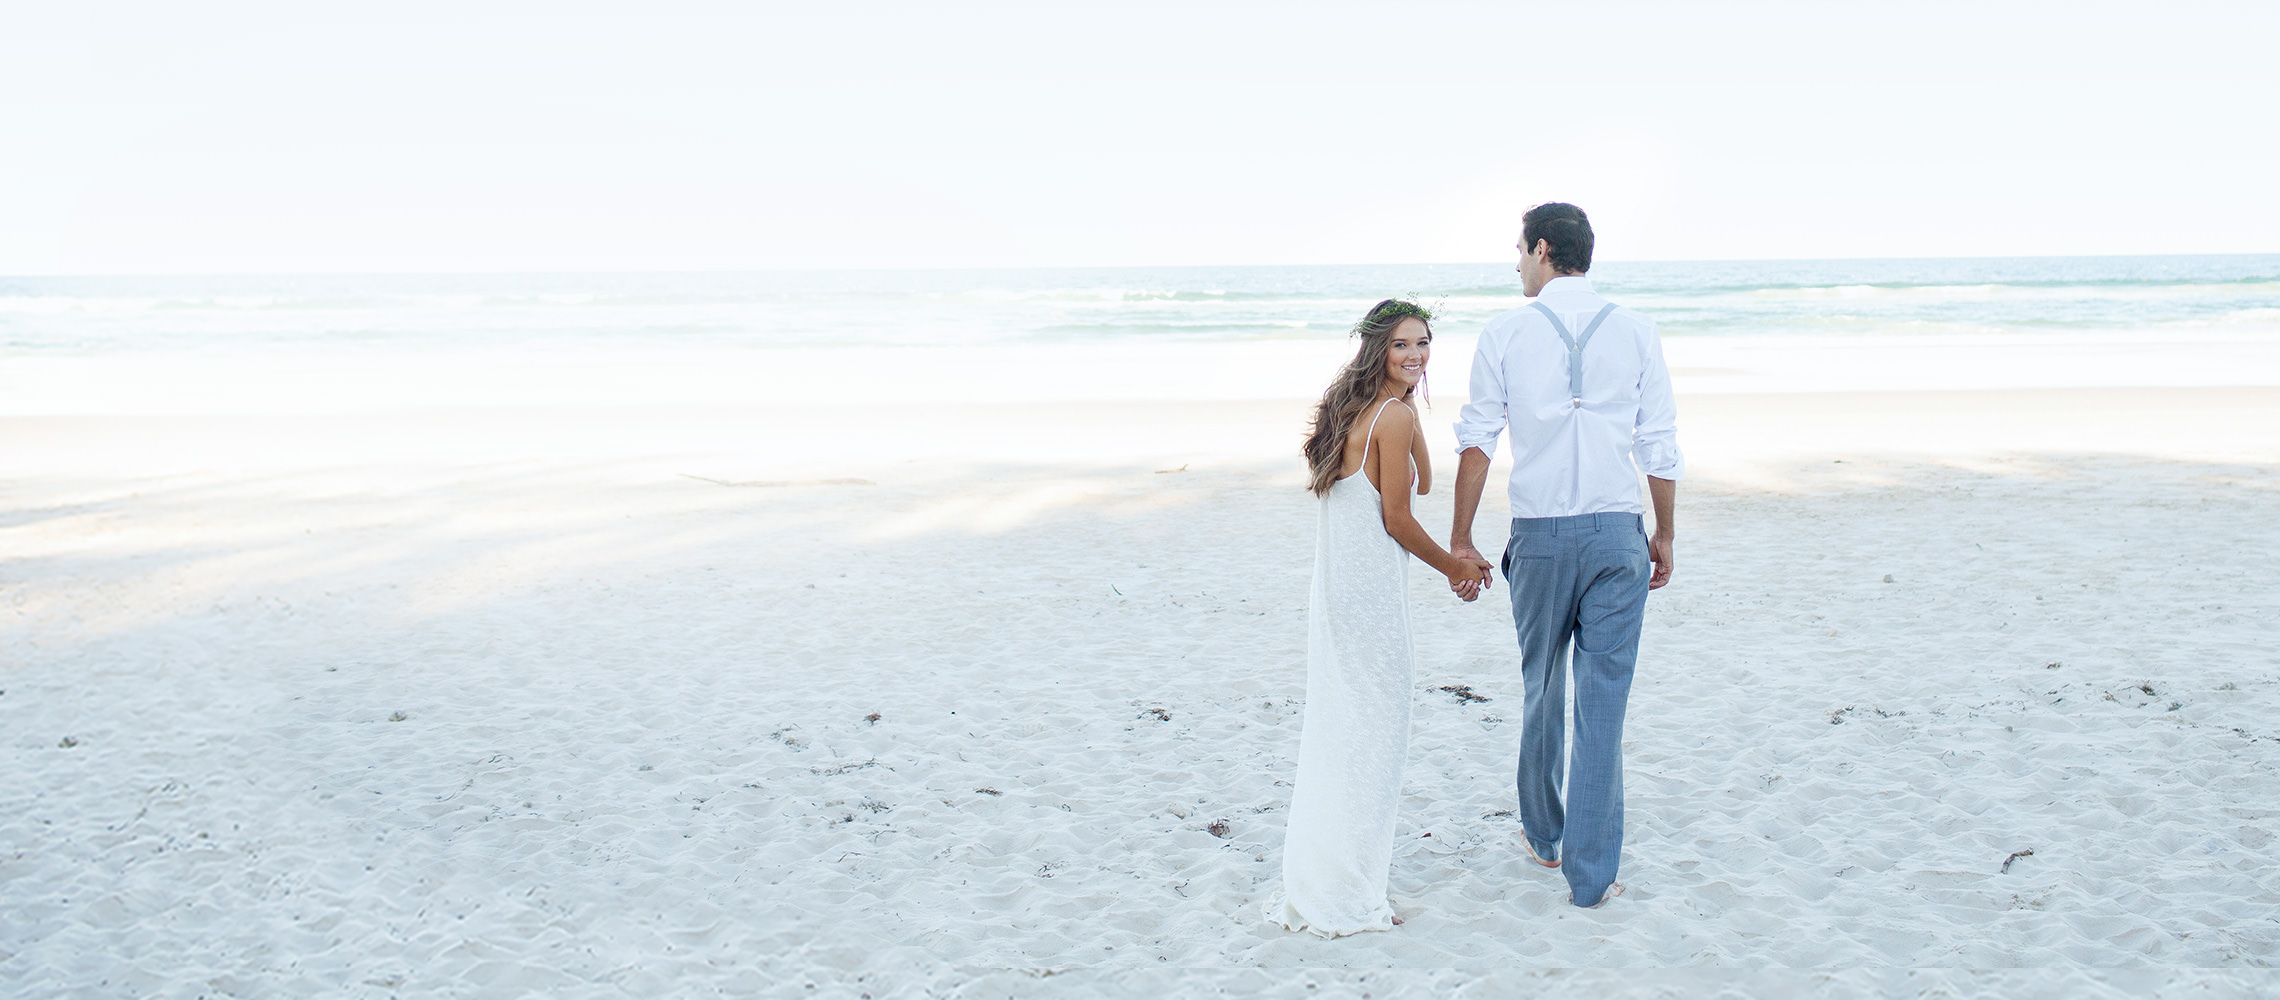 Couple holding hands at the beach on their wedding day.